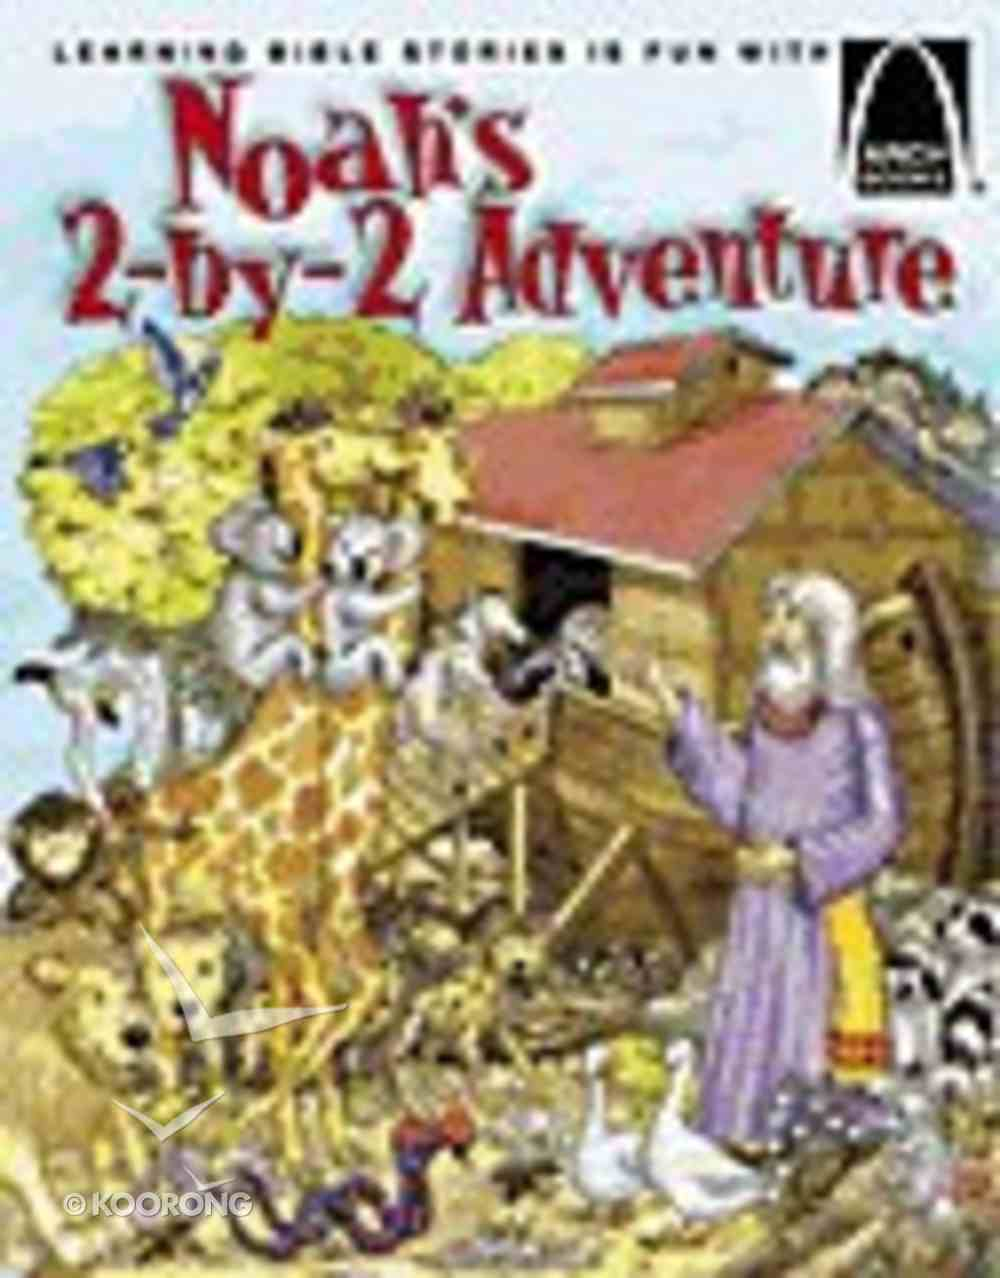 Noah's 2-By-2 Adventure (Arch Books Series) Paperback